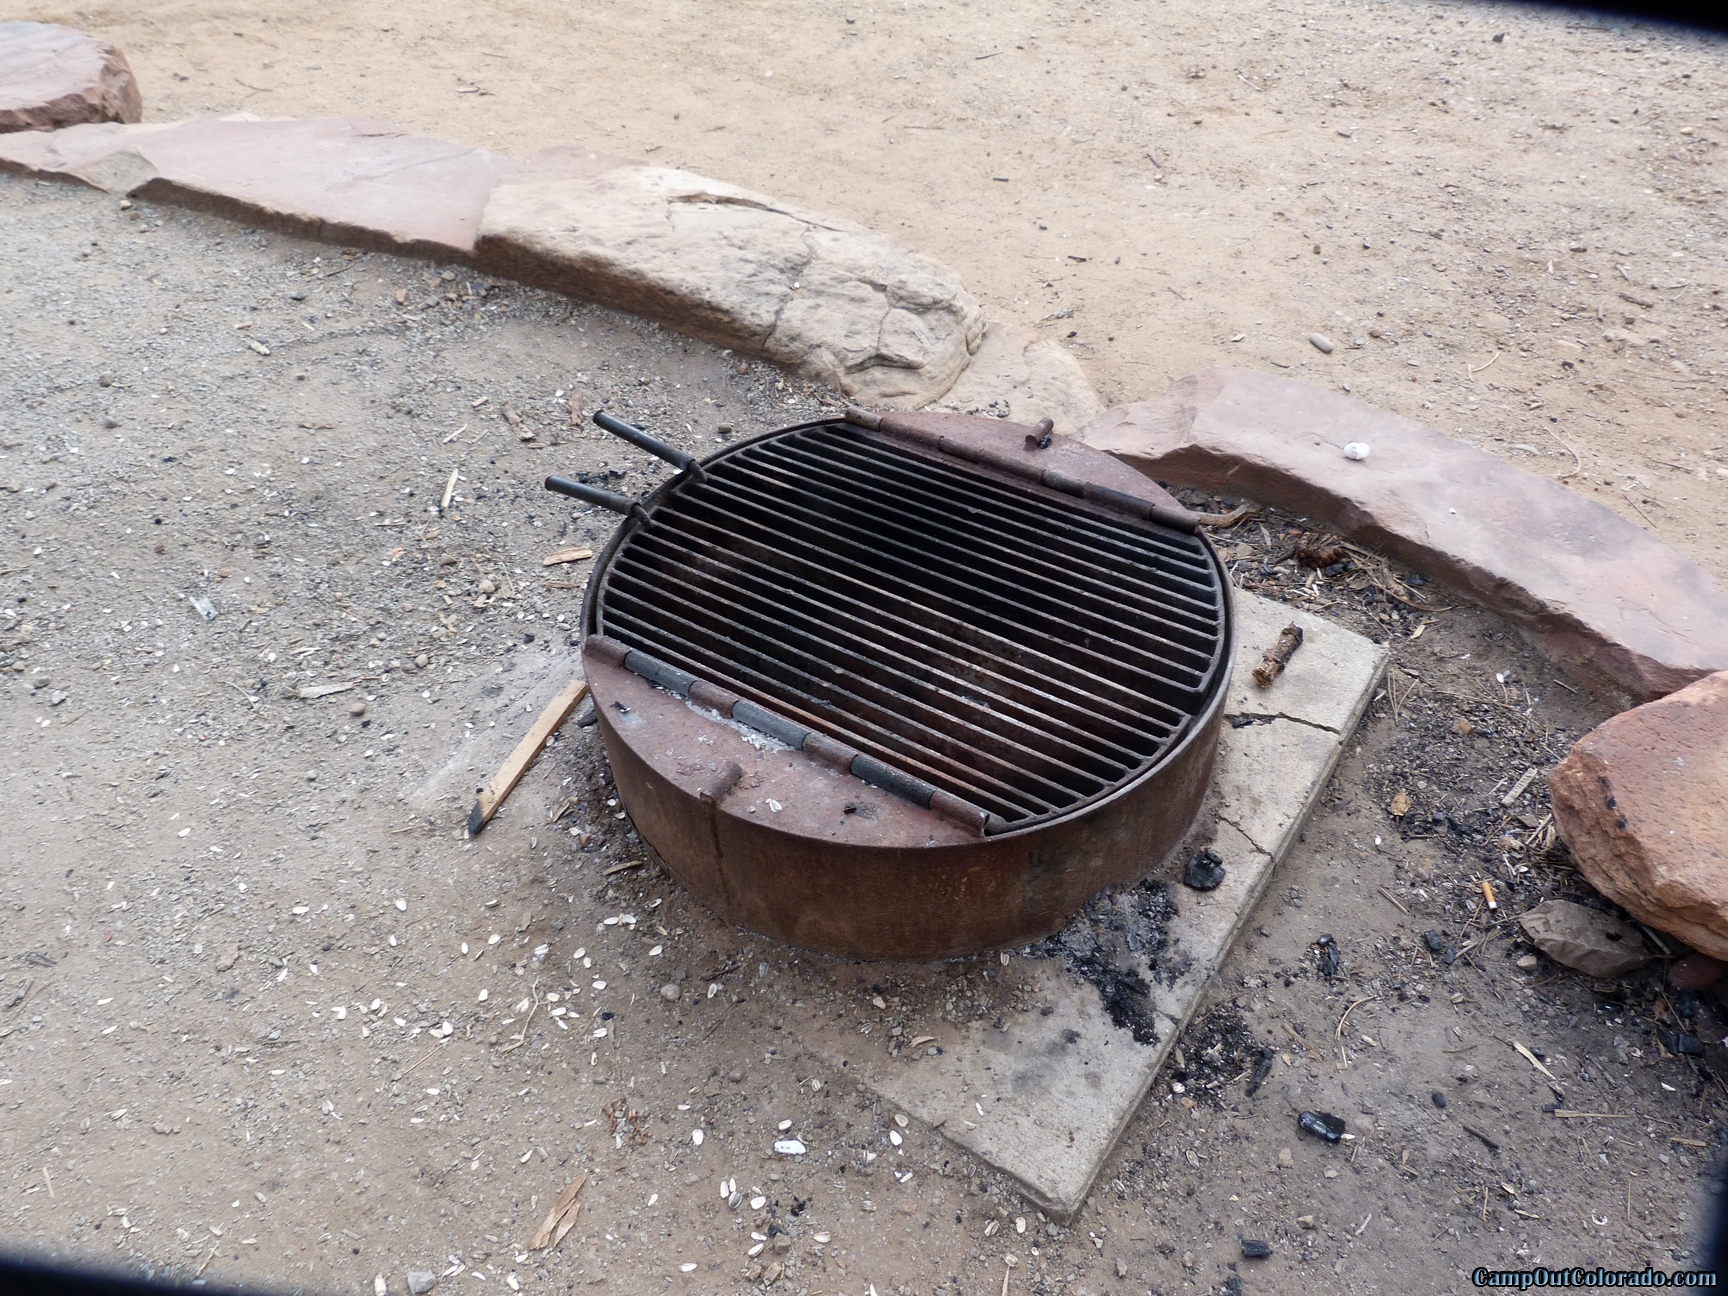 camp-out-colorado-carter-lake-fire-ring